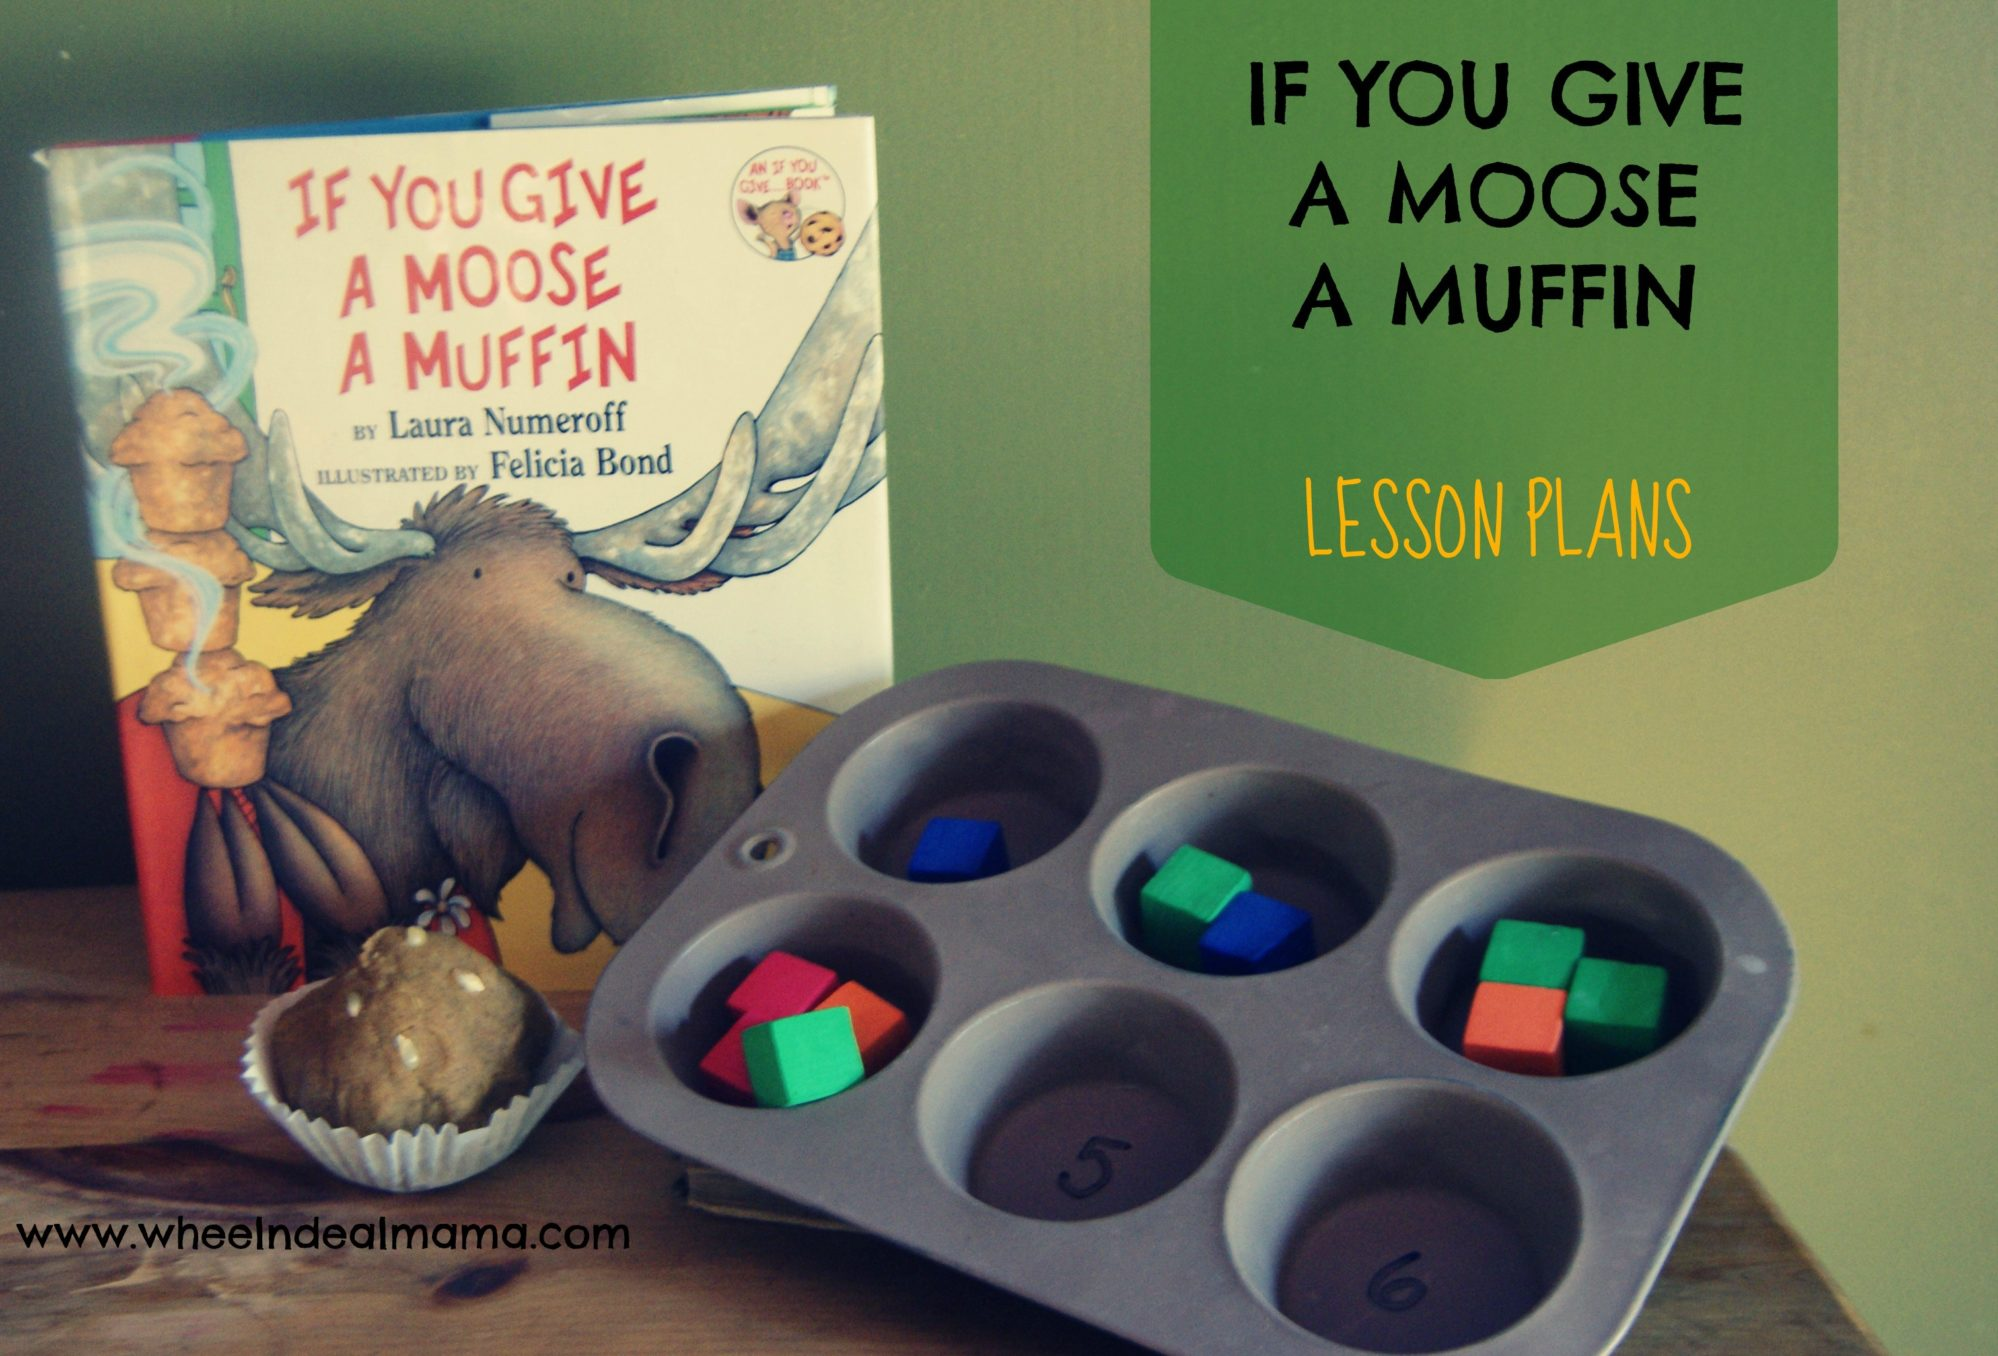 if you give a moose a muffin lesson plans wheel n deal mama